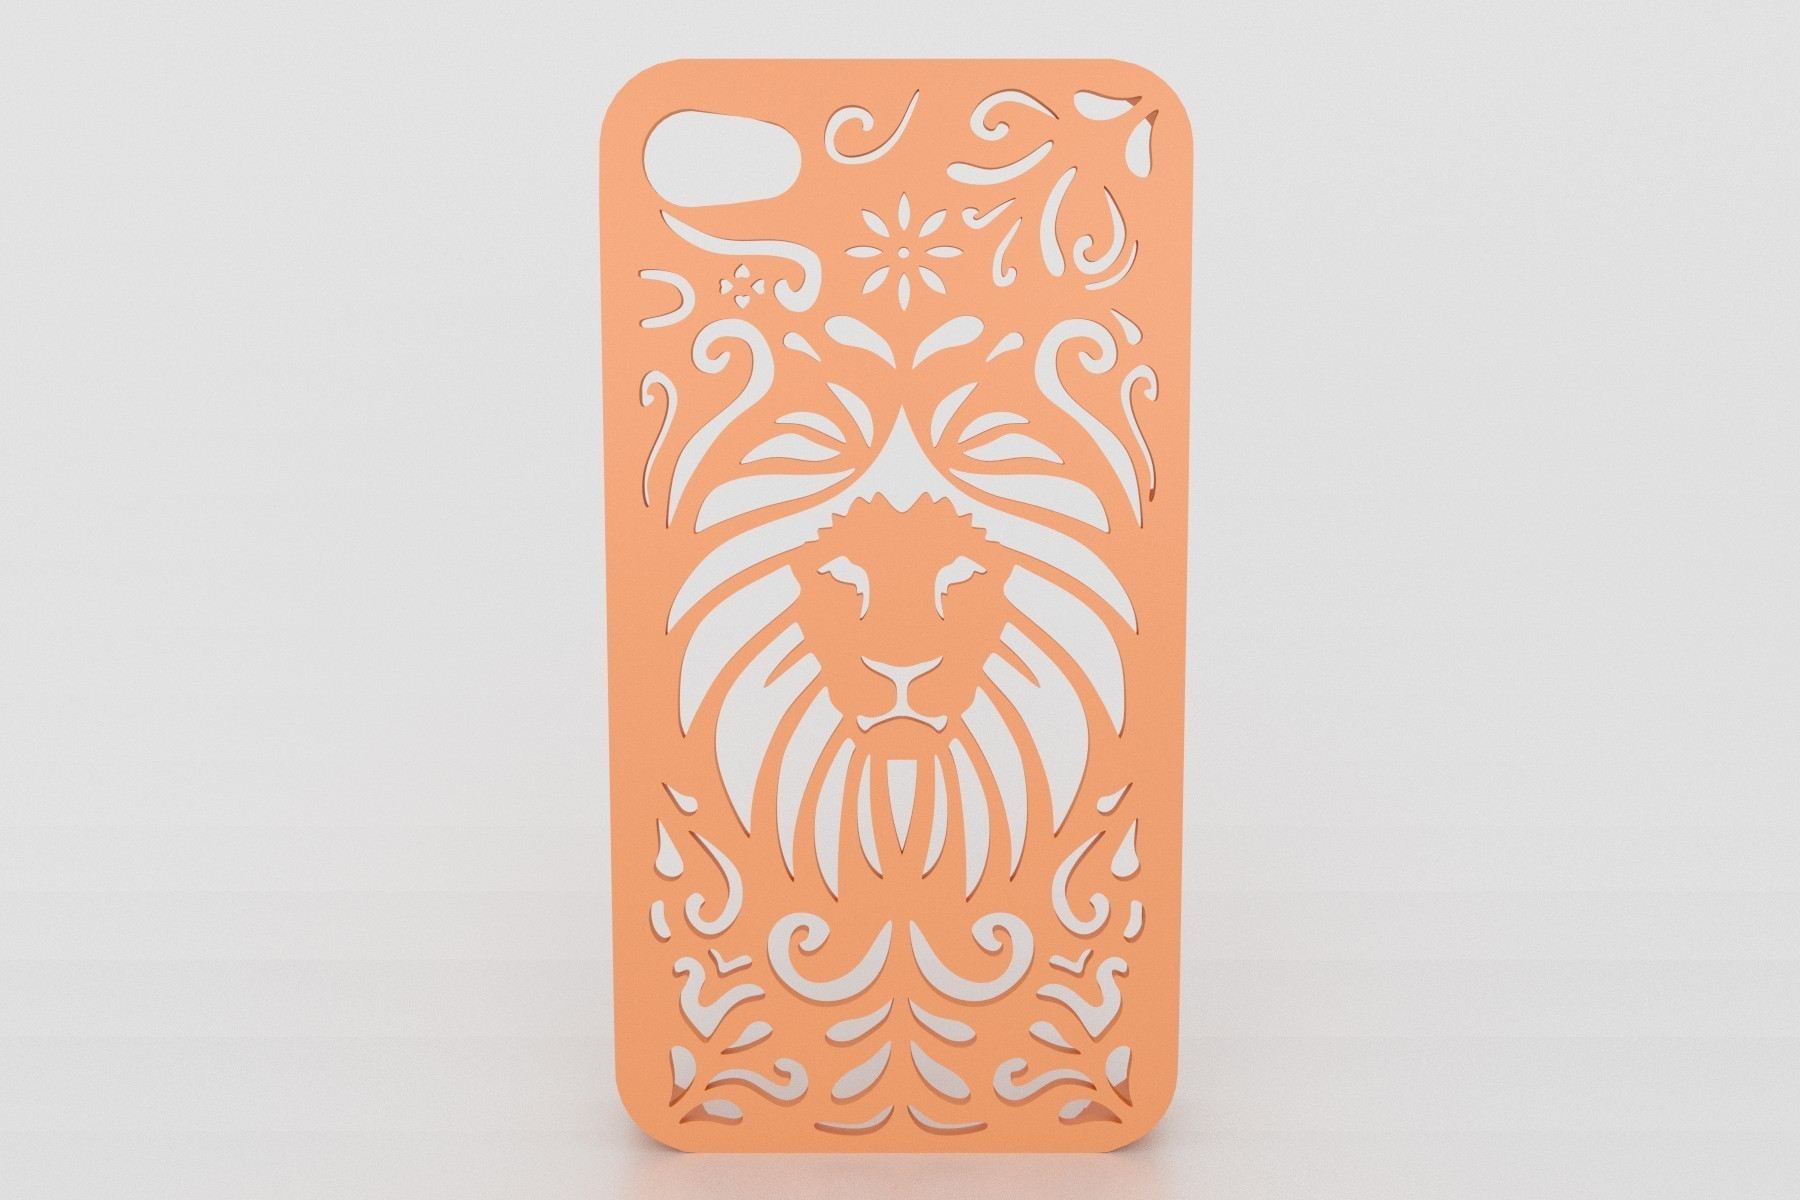 tribal lion-Iphone-case-5 render.jpg Download STL file Tribal Lion Floral Iphone Case 6 6s • 3D printing model, Custom3DPrinting